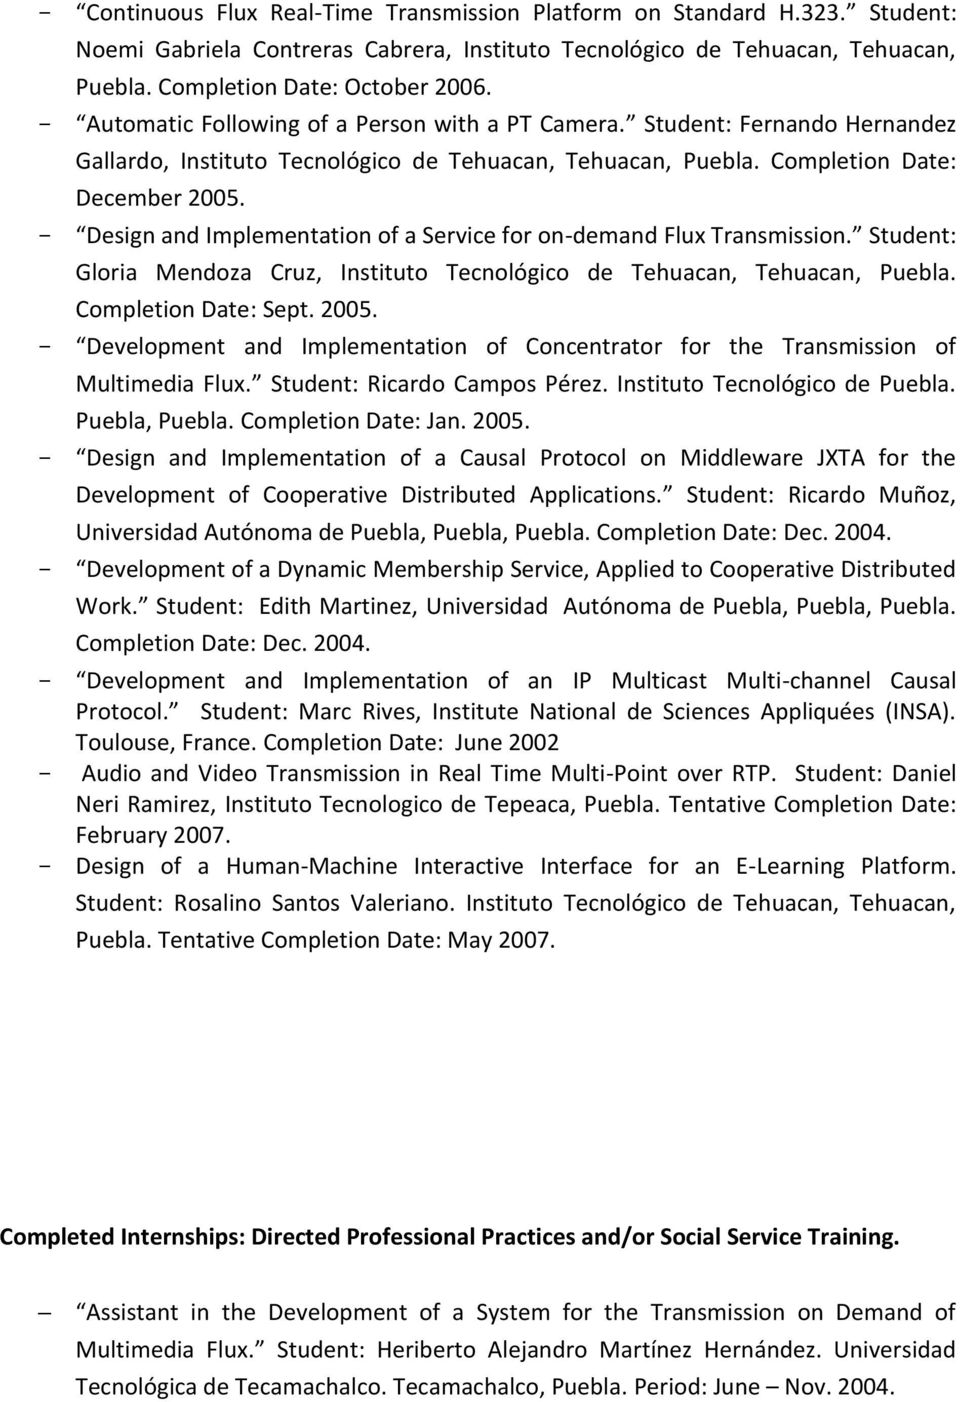 Design and Implementatin f a Service fr n-demand Flux Transmissin. Student: Glria Mendza Cruz, Institut Tecnlógic de Tehuacan, Tehuacan, Puebla. Cmpletin Date: Sept. 2005.